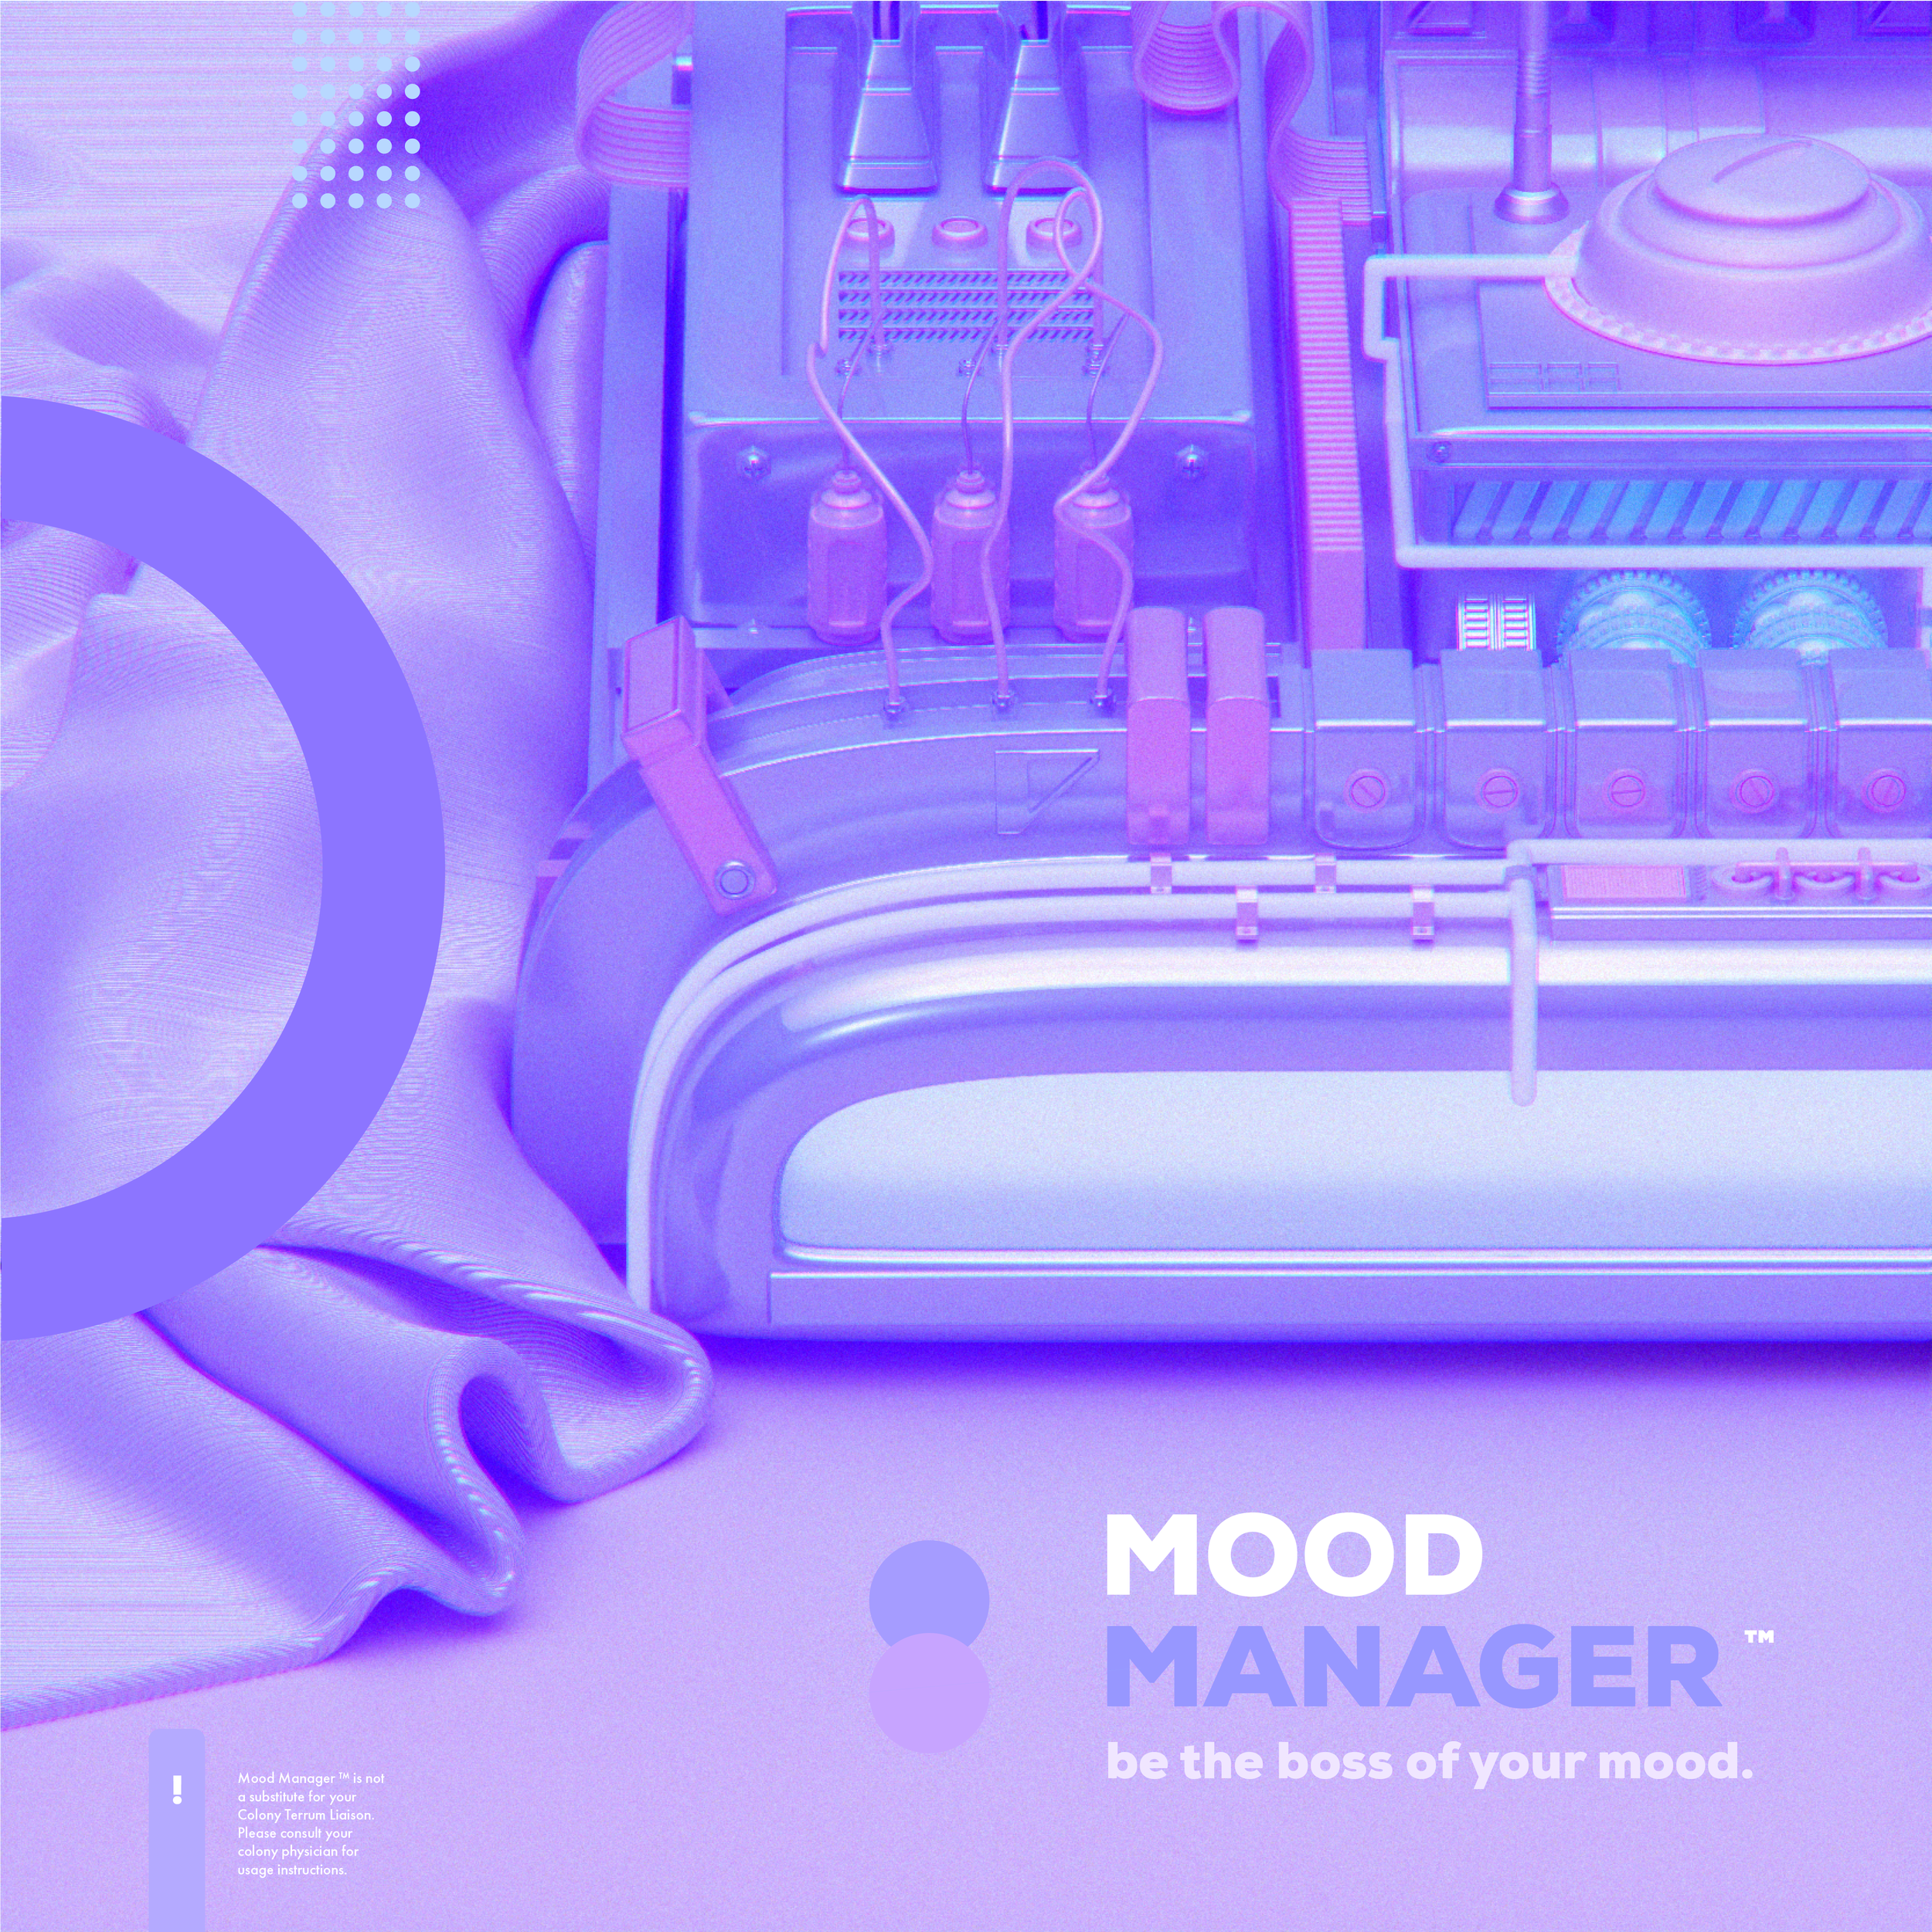 mood manager